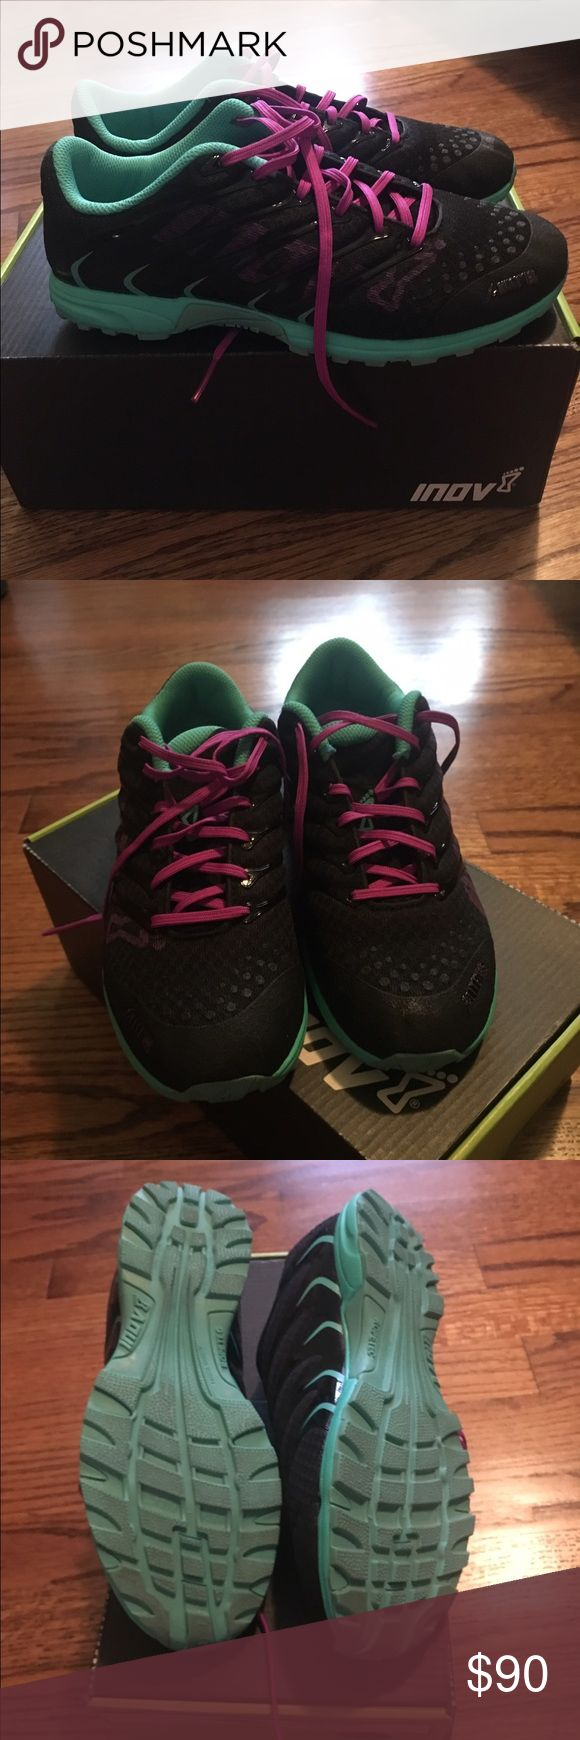 Inov 8 F lite 195 Cross training shoe. Black, teal and purple. Worn only once to the grocery store. Original box. Light weight. inov 8 Shoes Athletic Shoes